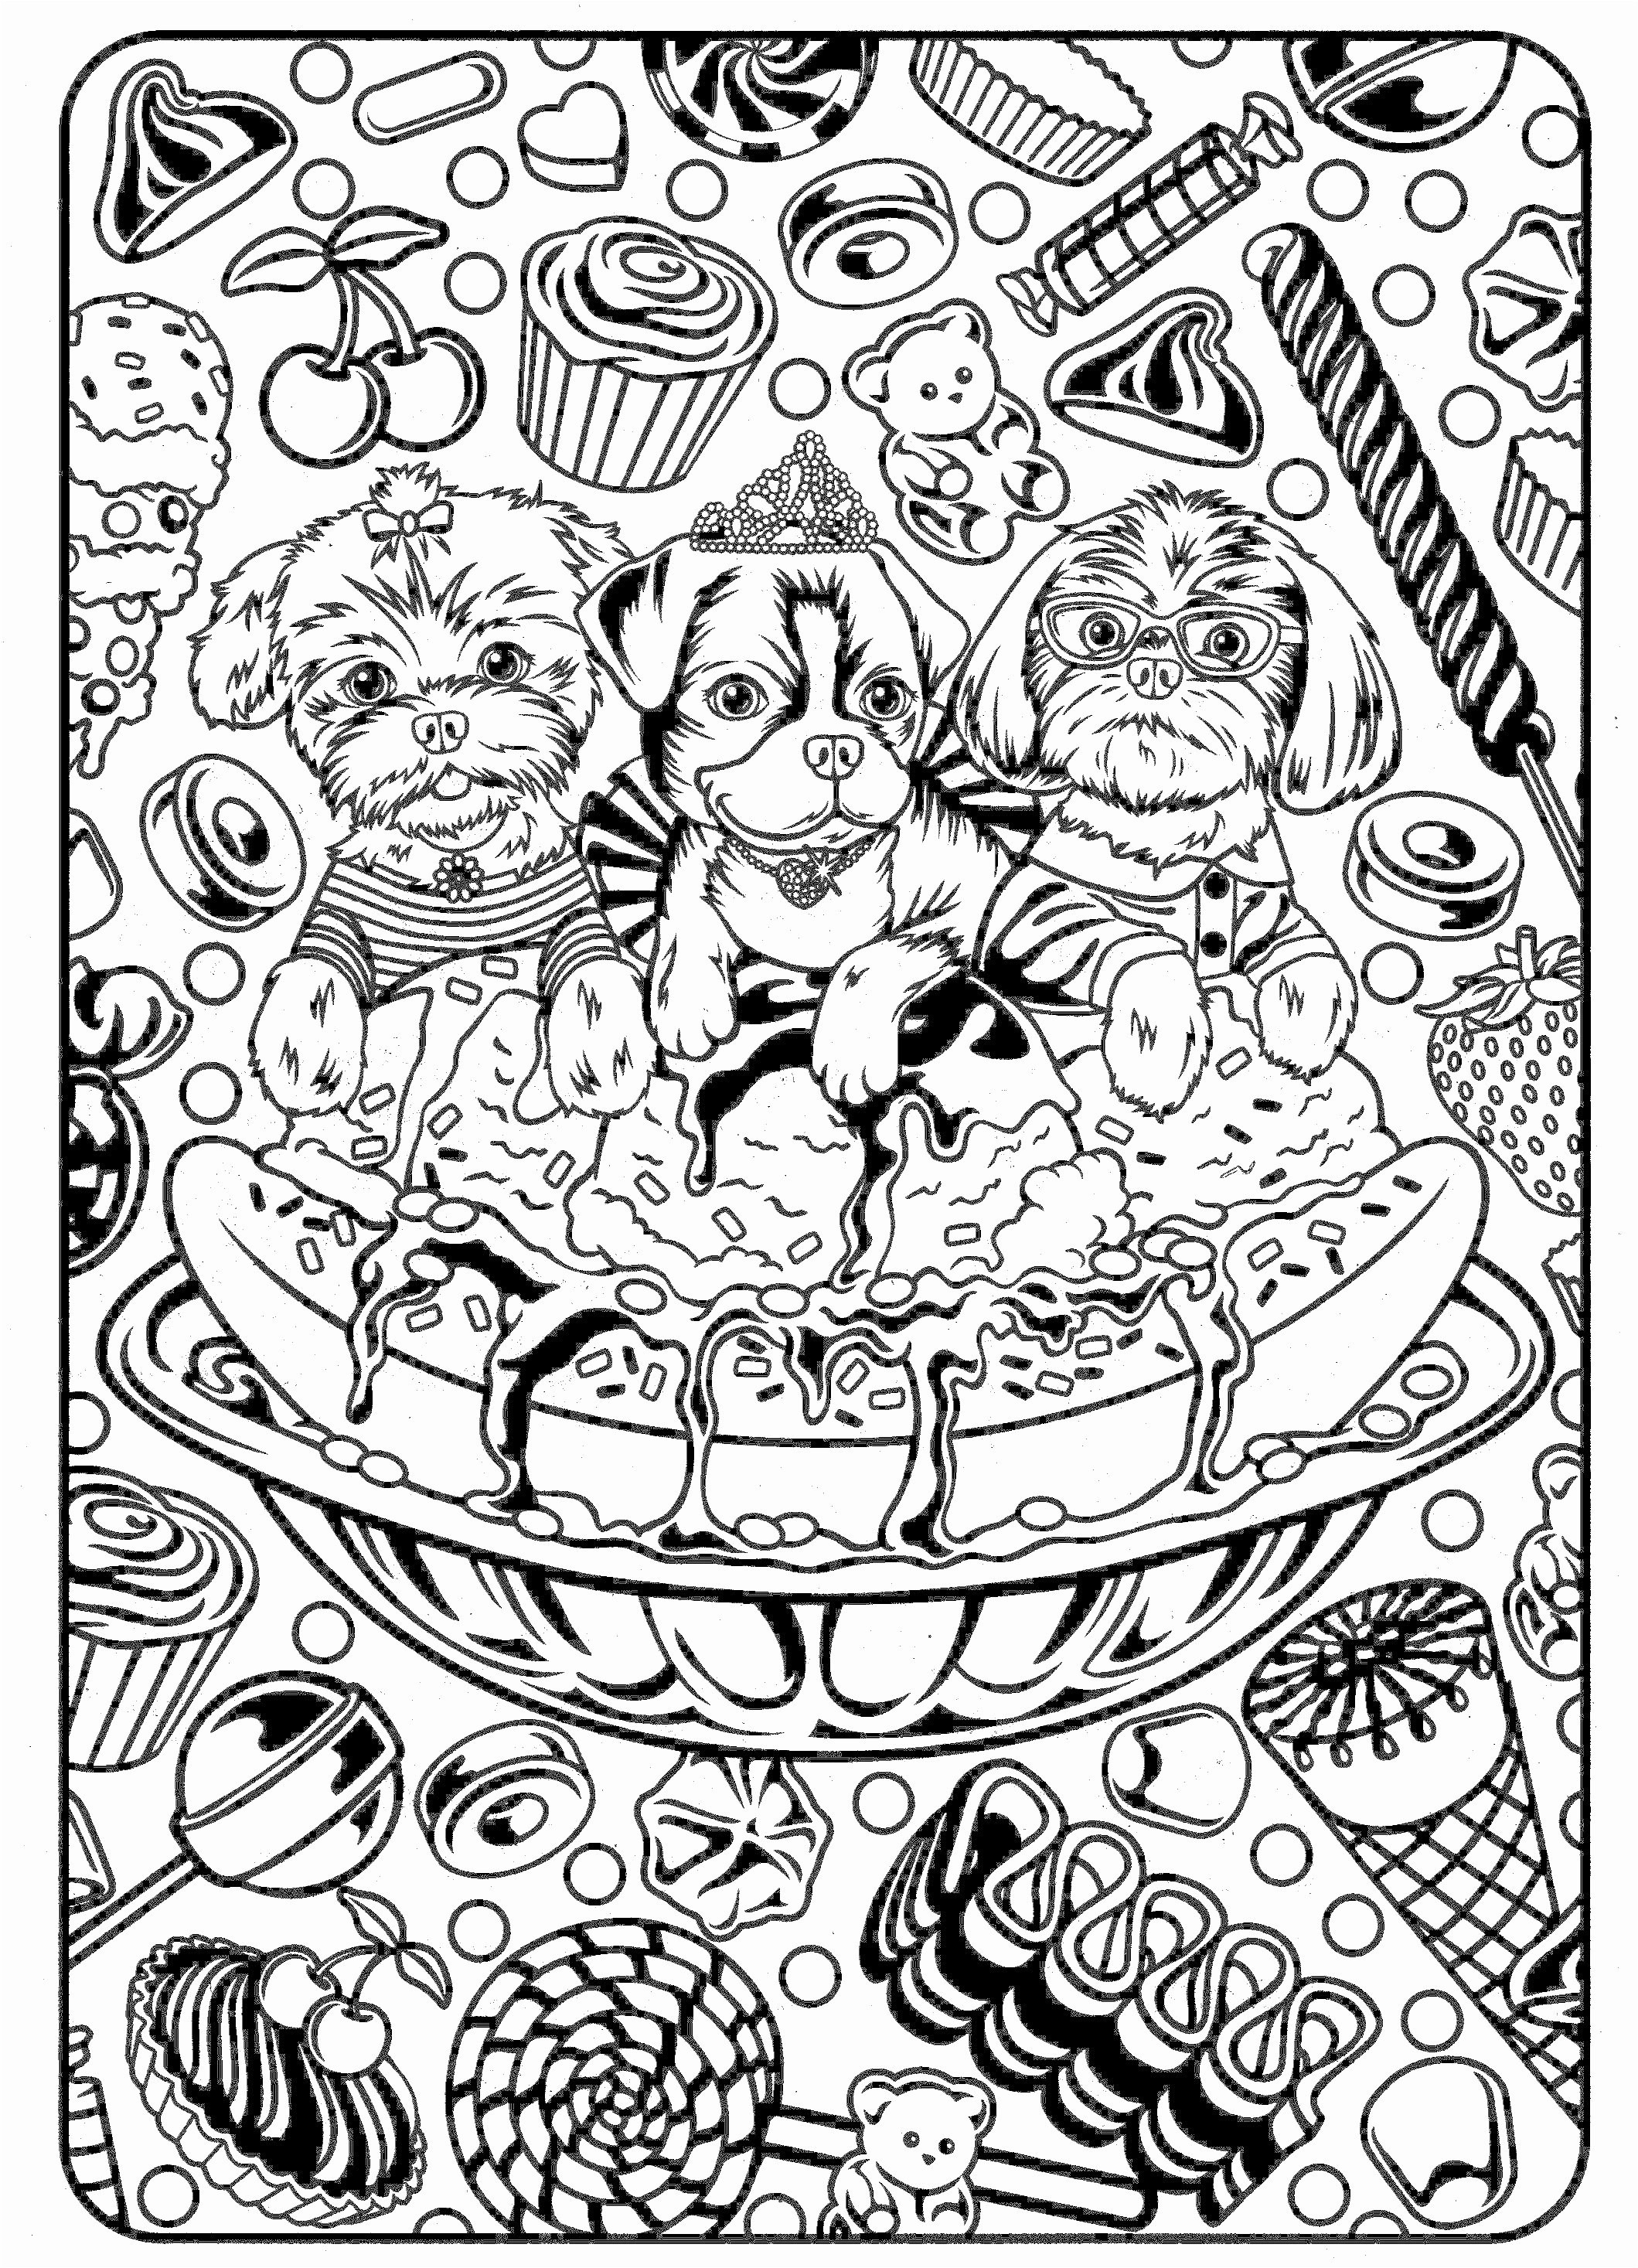 halloween costumes coloring pages Collection-Halloween Costume Coloring Pages 4-j